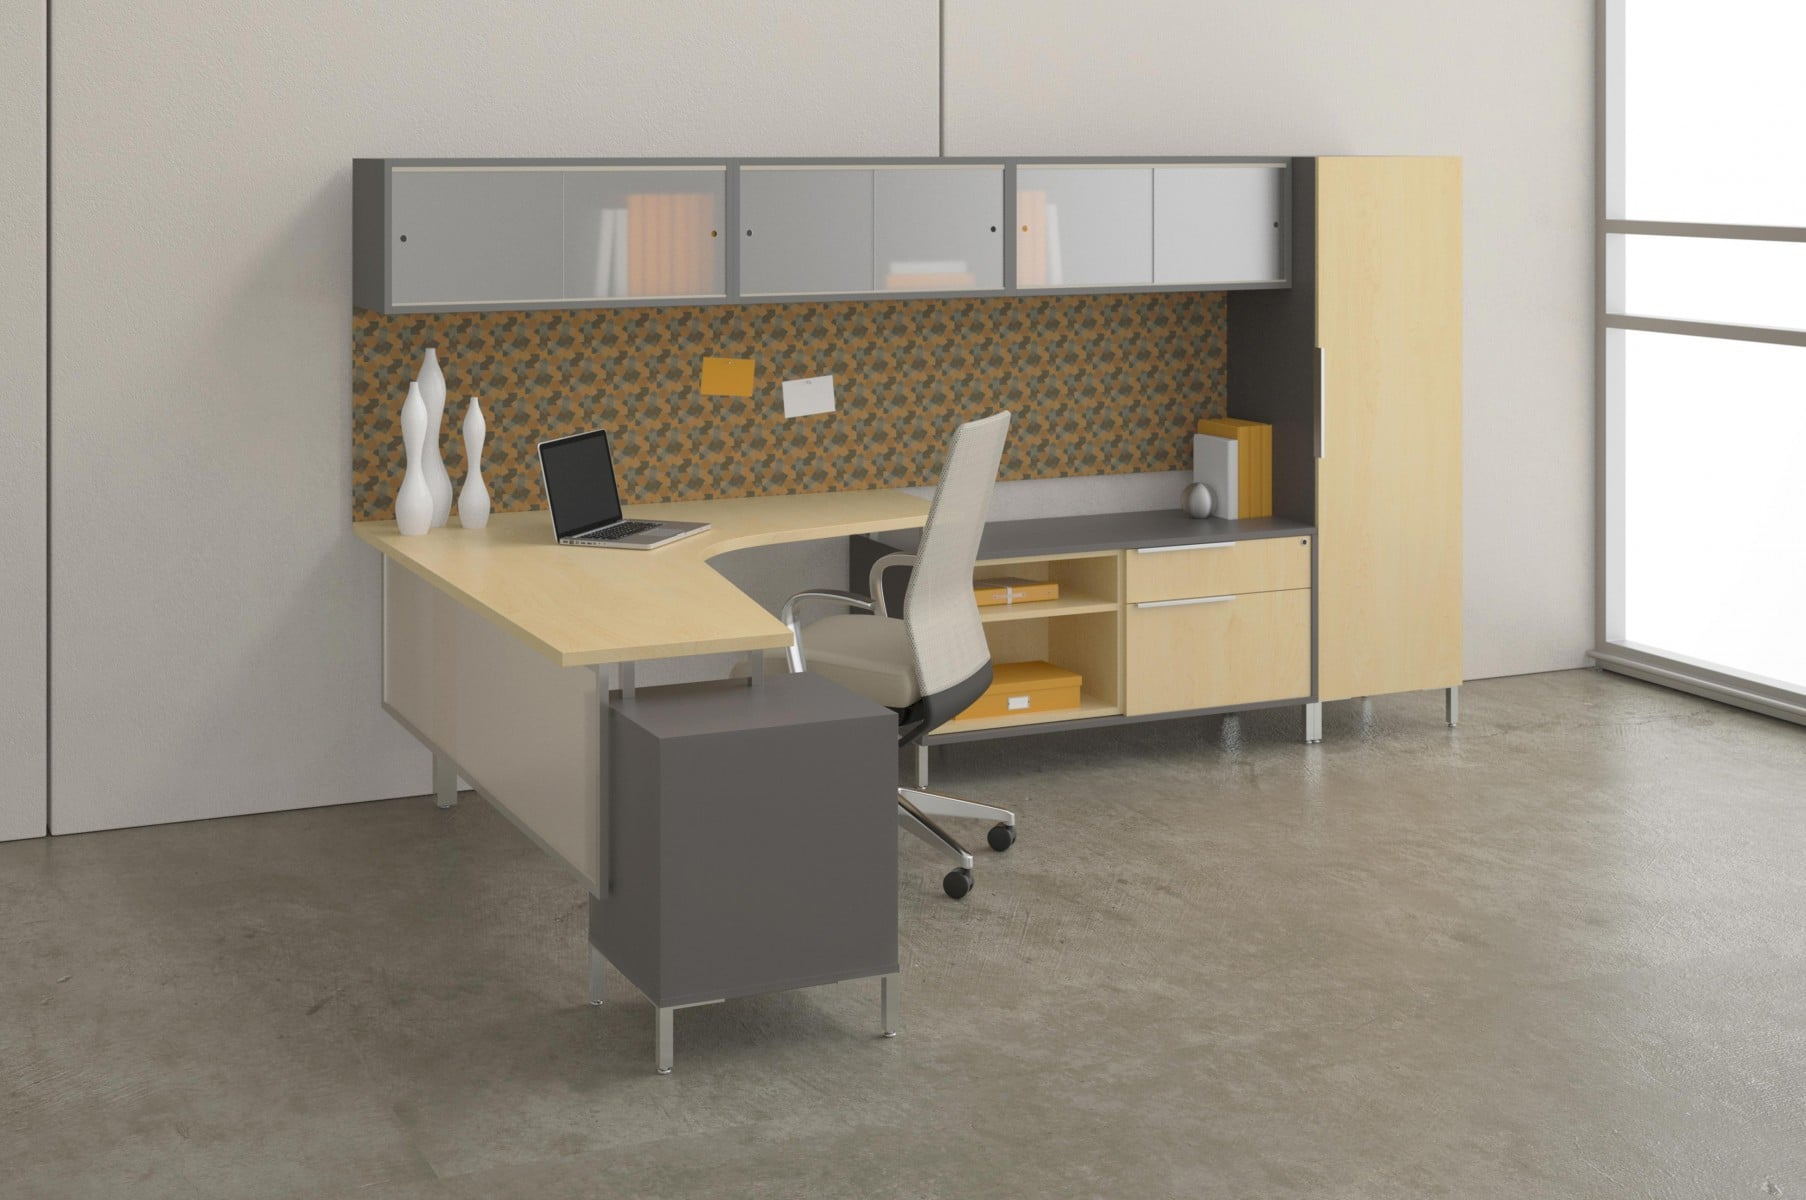 modern office desk furniture system with light wood hues